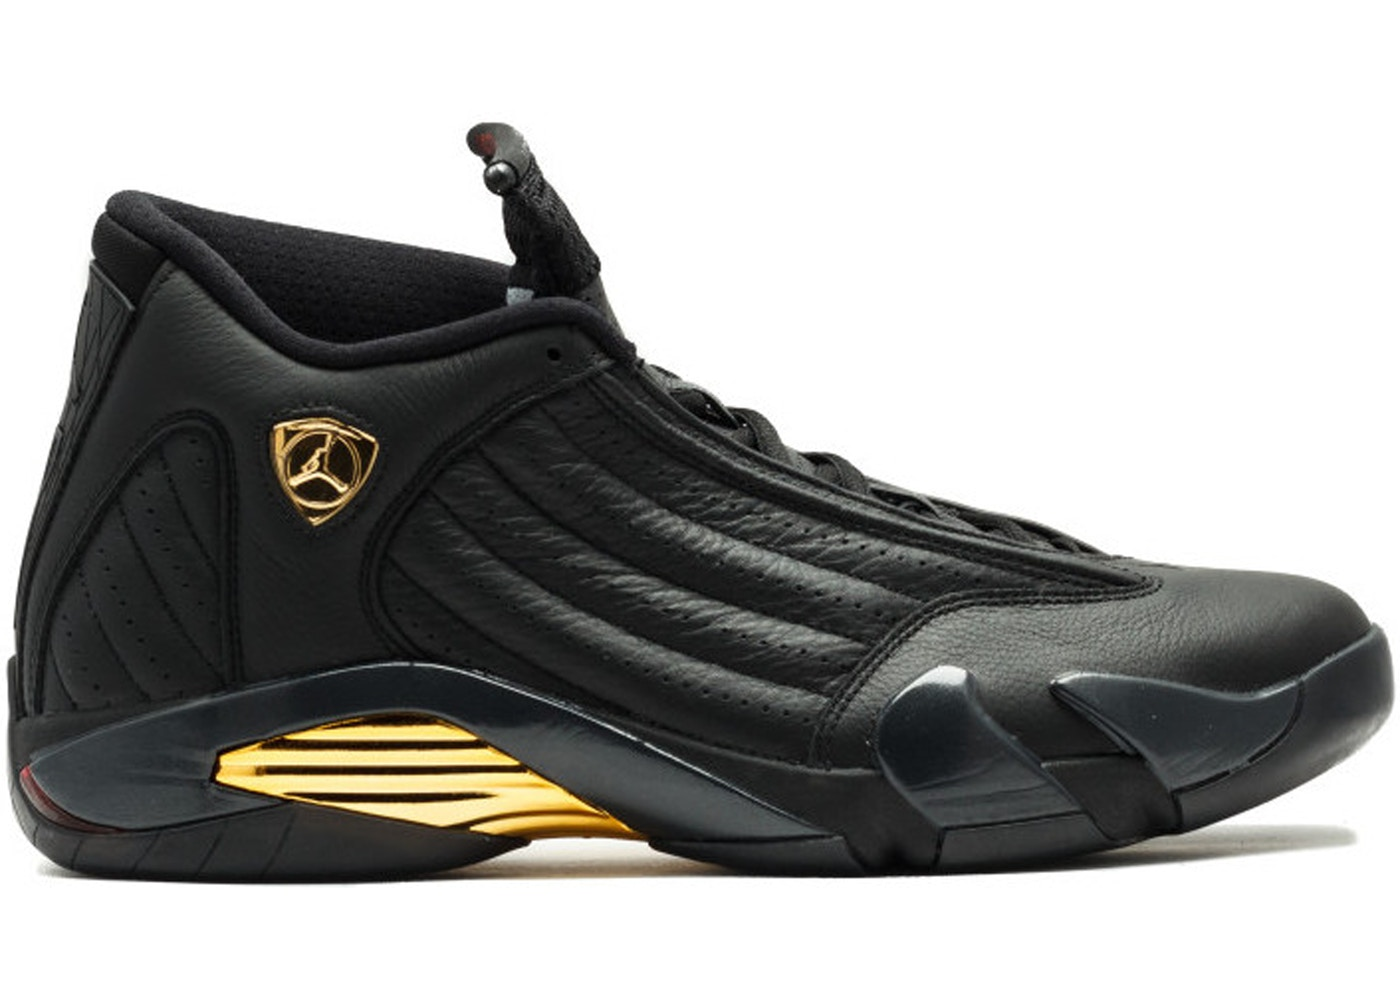 a7f8c661d15 Sell. or Ask. Size --. View All Bids. Jordan 14 Retro DMP ...